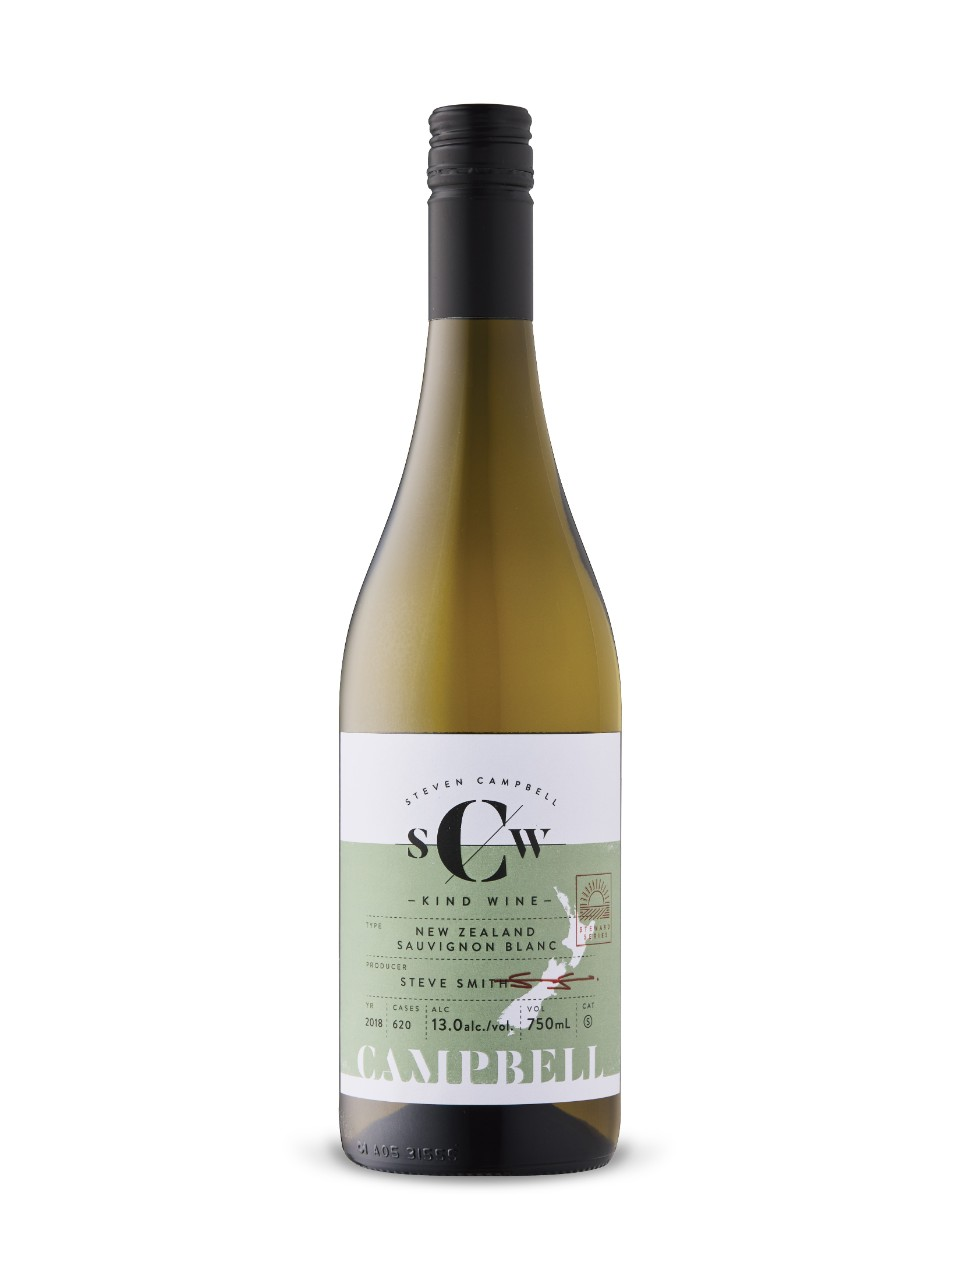 Image for Campbell Kind Wine Sauvignon Blanc 2018 from LCBO